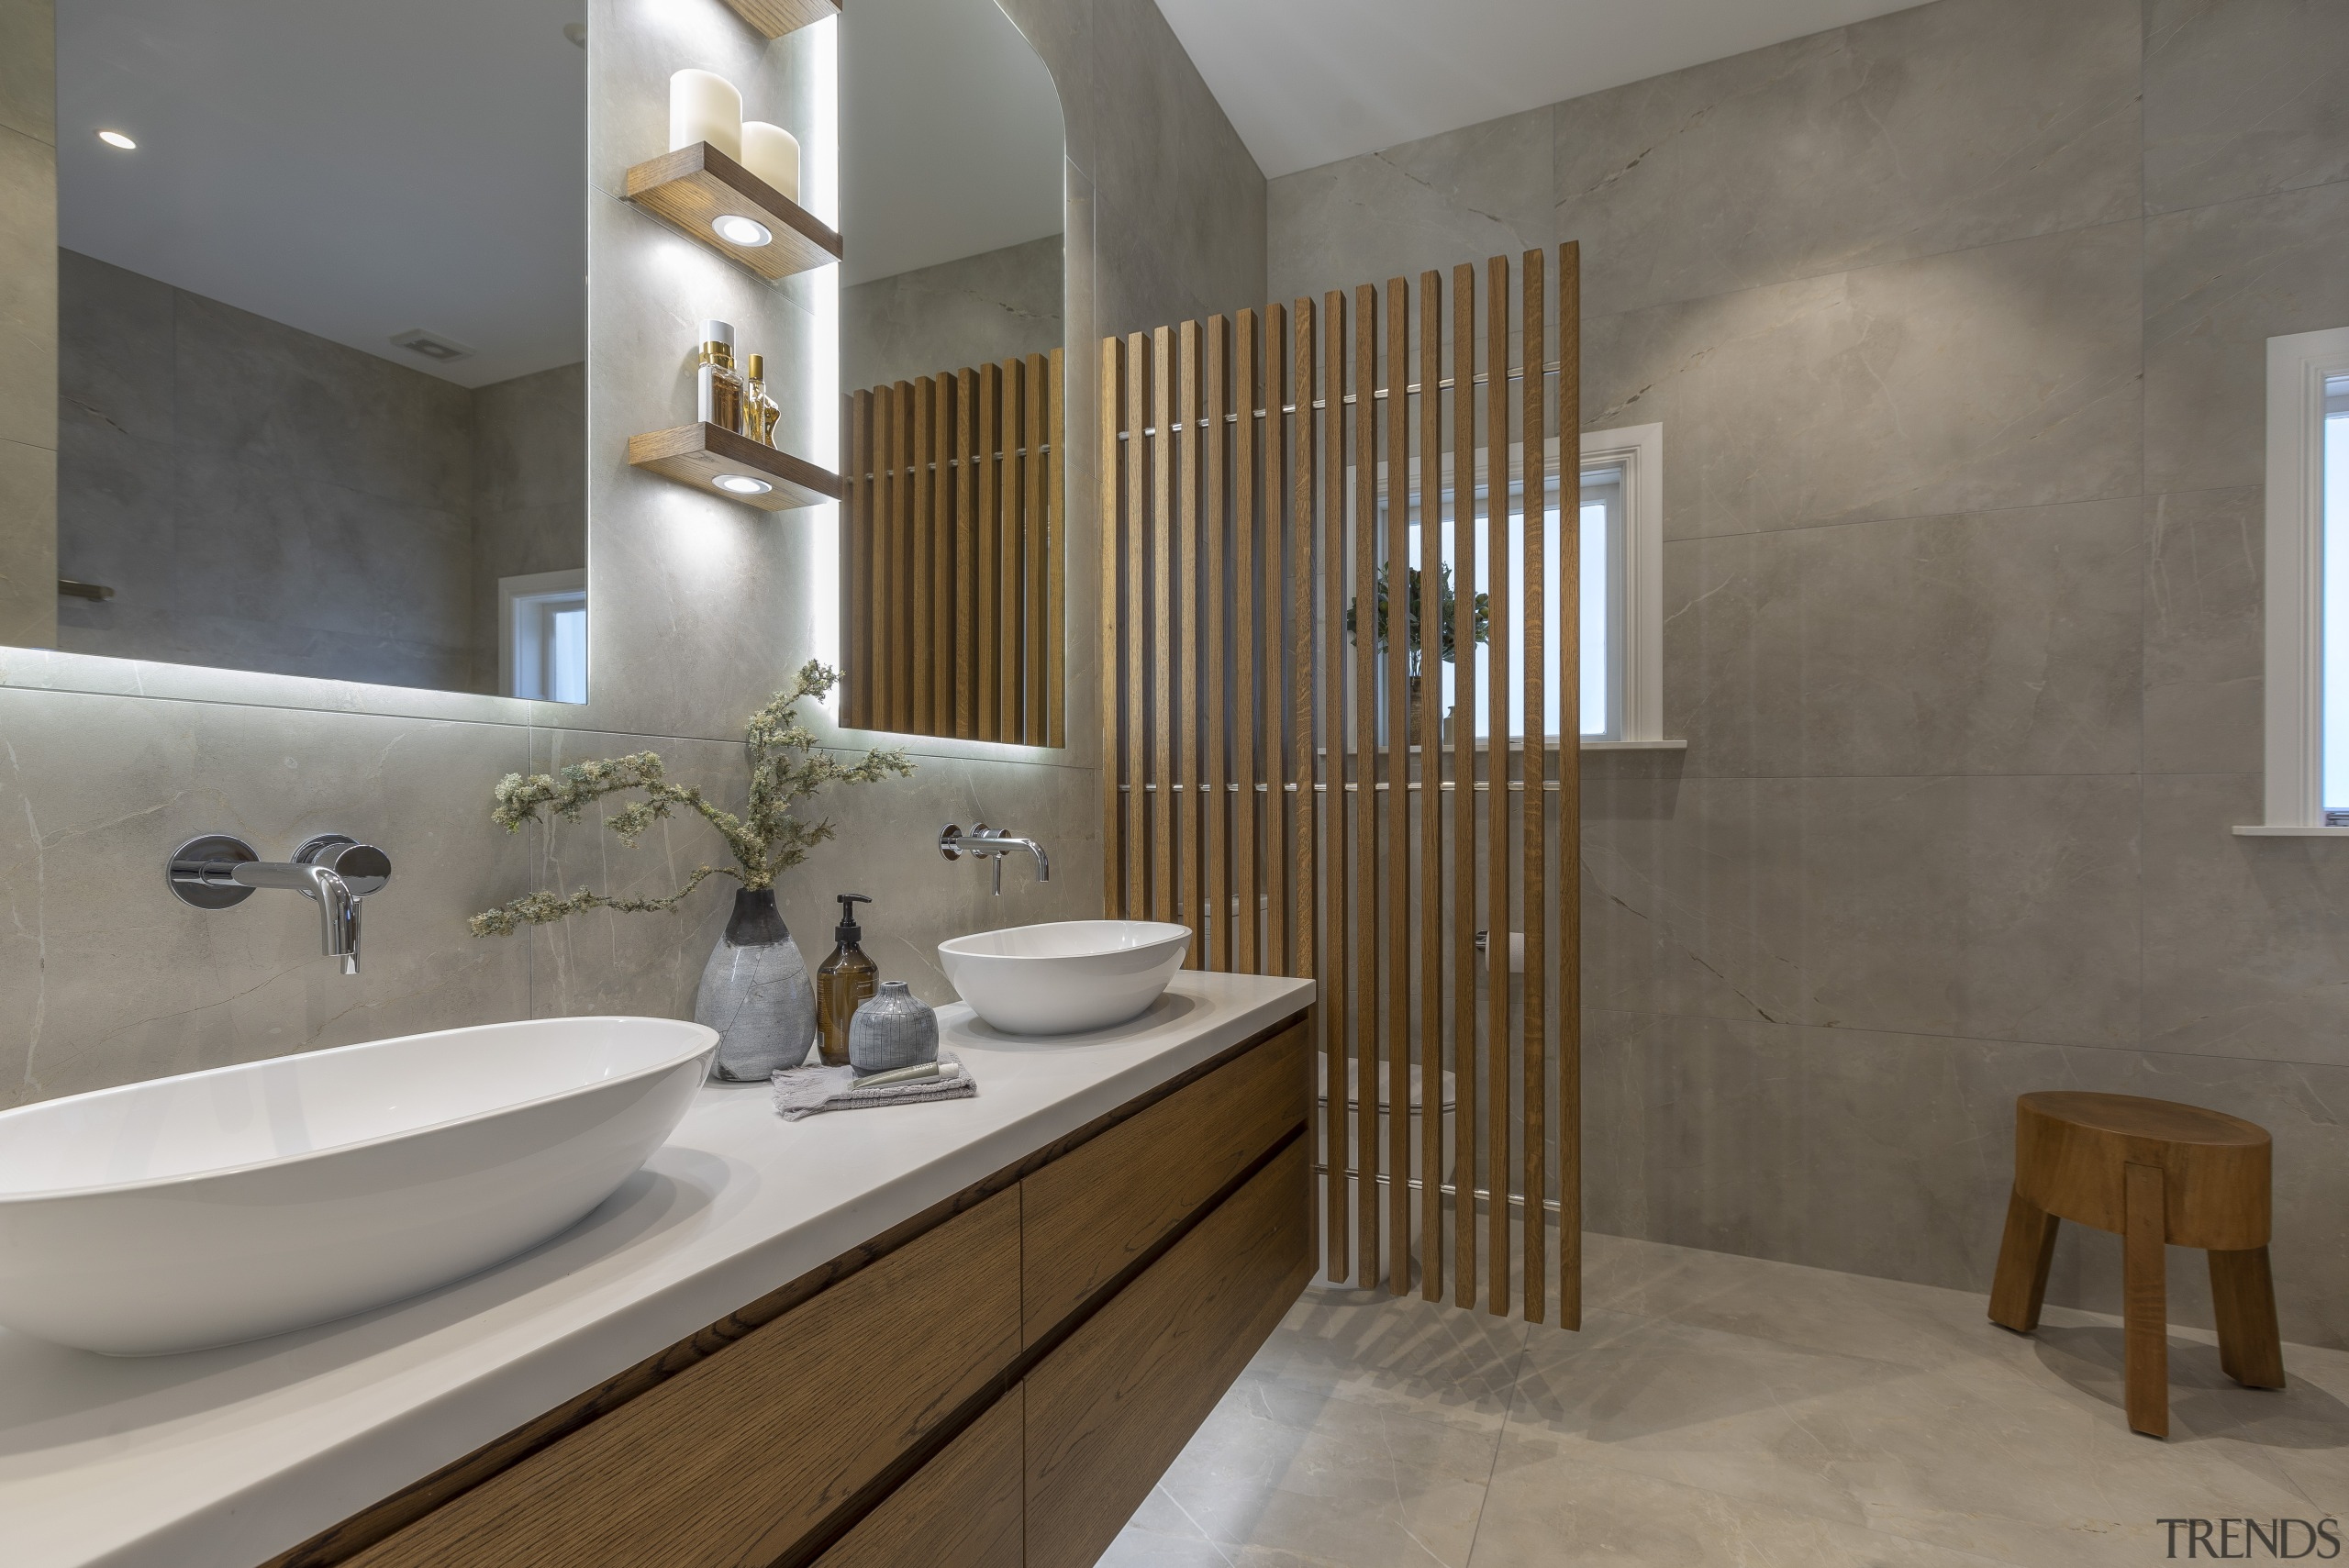 Large format porcelain tiles with the look of architecture, bathroom, bathroom accessory, bathroom cabinet, bathtub, beige, building, ceiling, ceramic, estate, floor, flooring, furniture, home, house, interior design, material property, plumbing fixture, property, real estate, room, sink, tap, tile, wall, gray